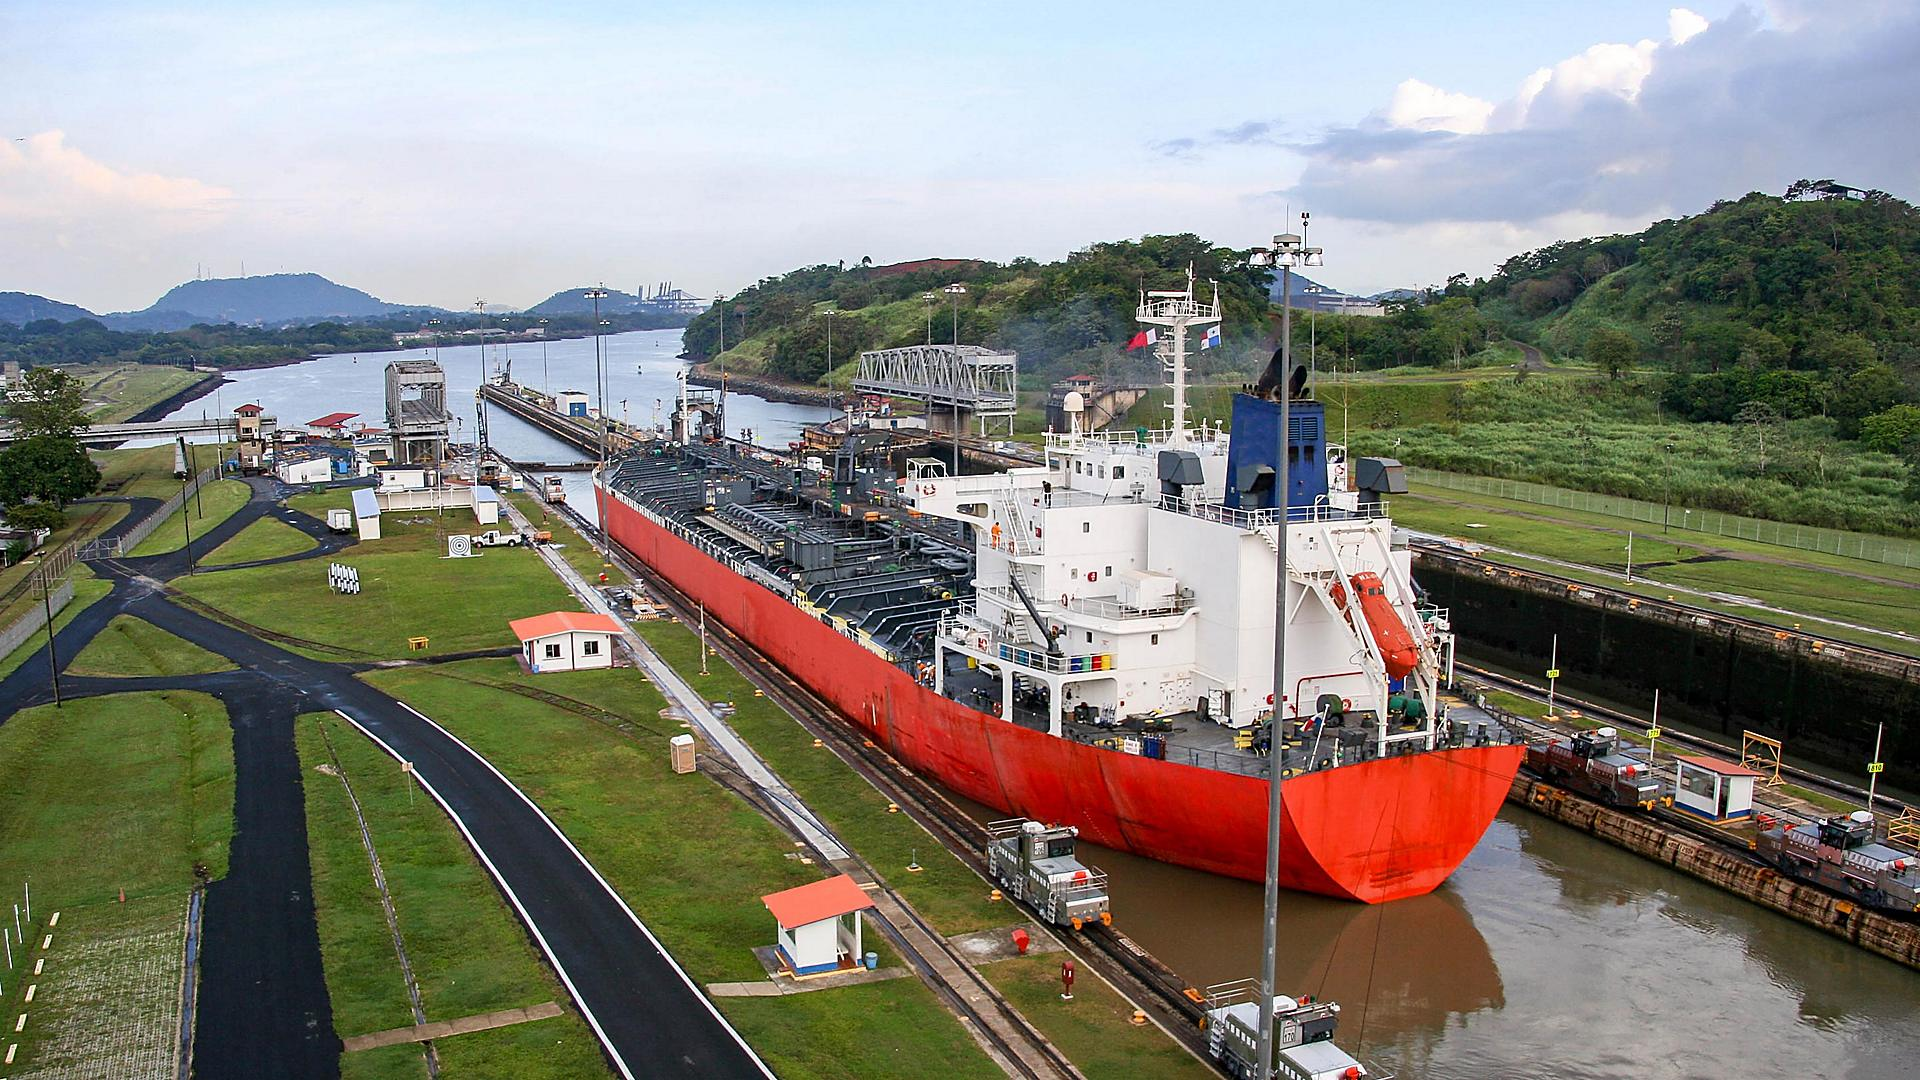 The Panama Canal contributes $1 billion to the economy of Panama each year.